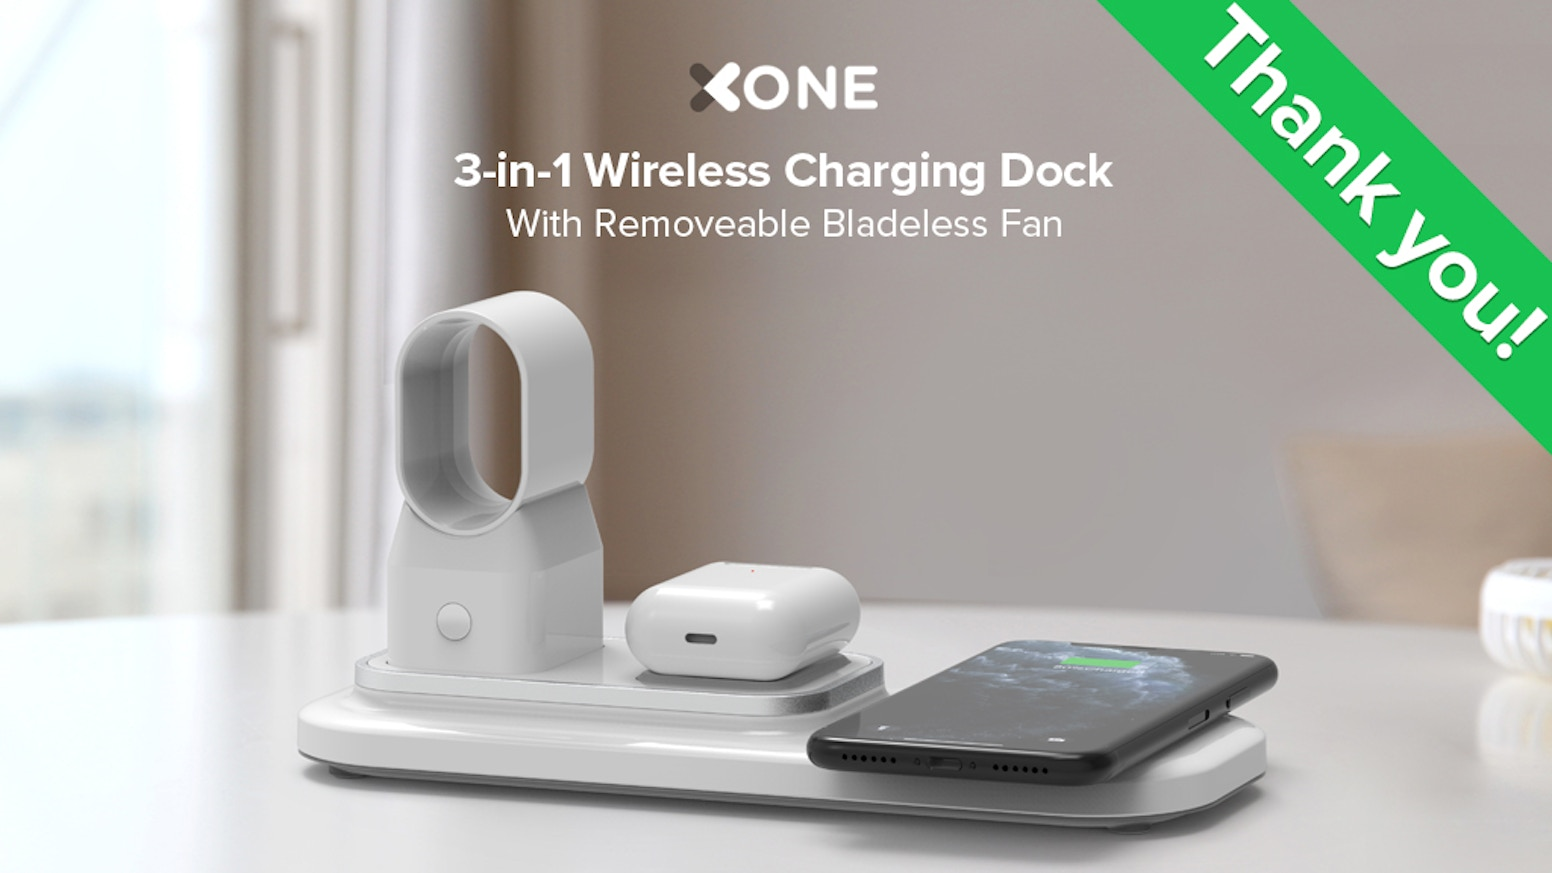 Designed to efficiently charge your Apple Watch, iPhone and Airpods Pro simultaneously. Say goodbye to tangled cables on your desk.